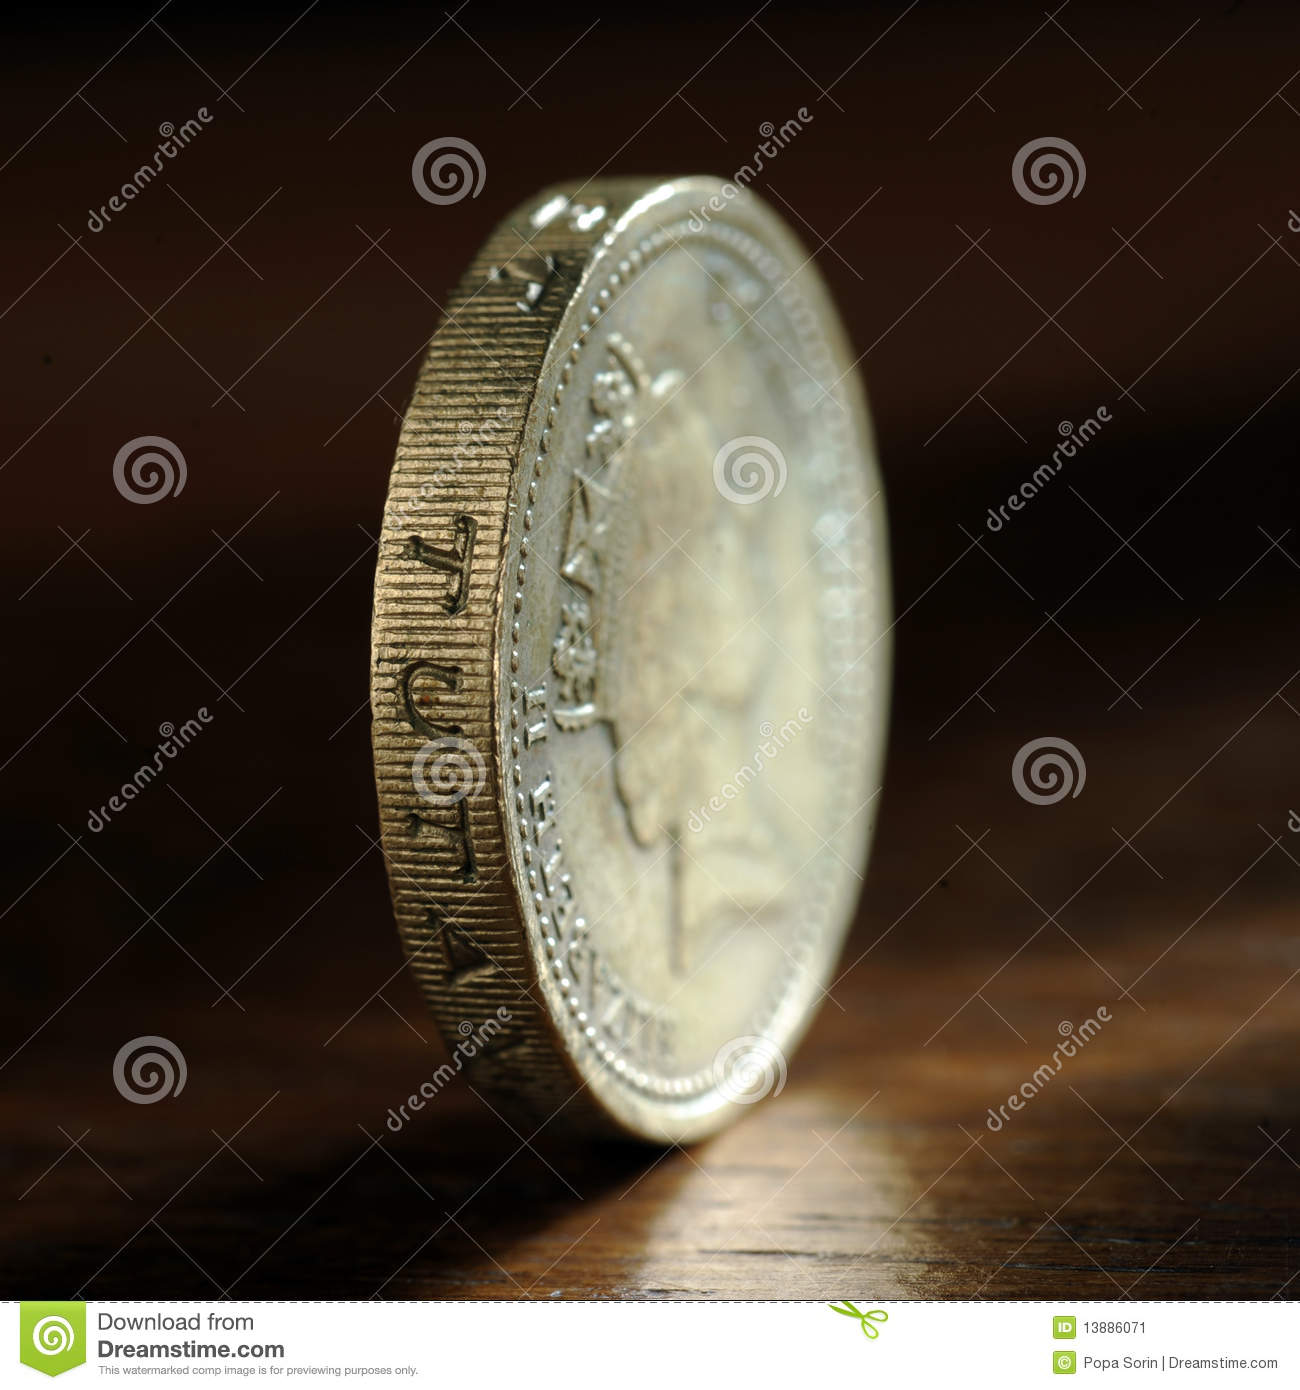 One pound sterling